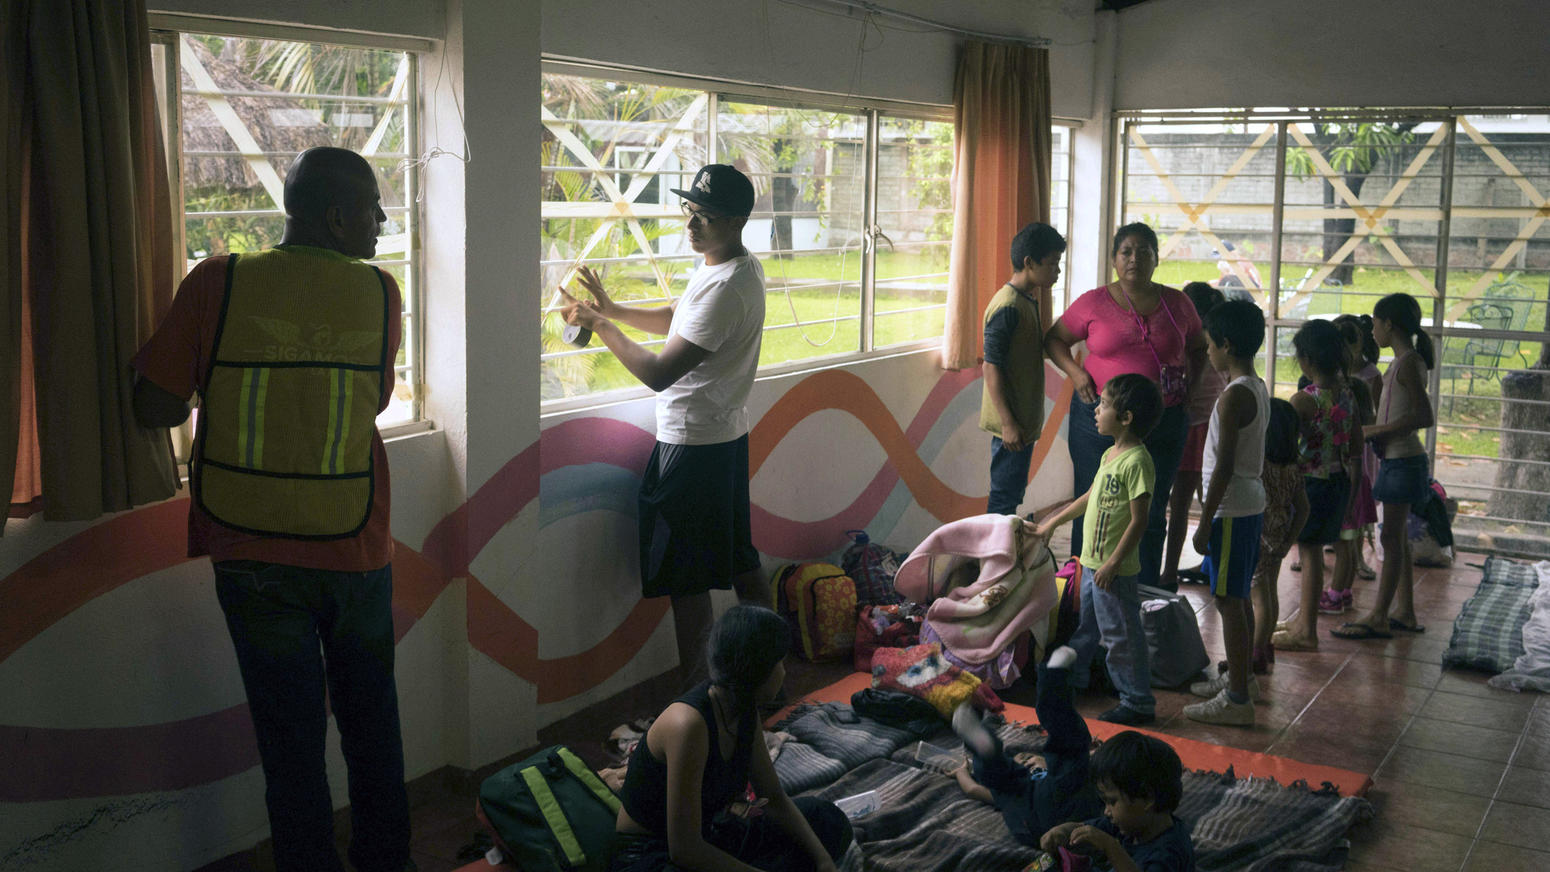 Men tried to secure the windows at a makeshift shelter in Puerto Vallarta. ()